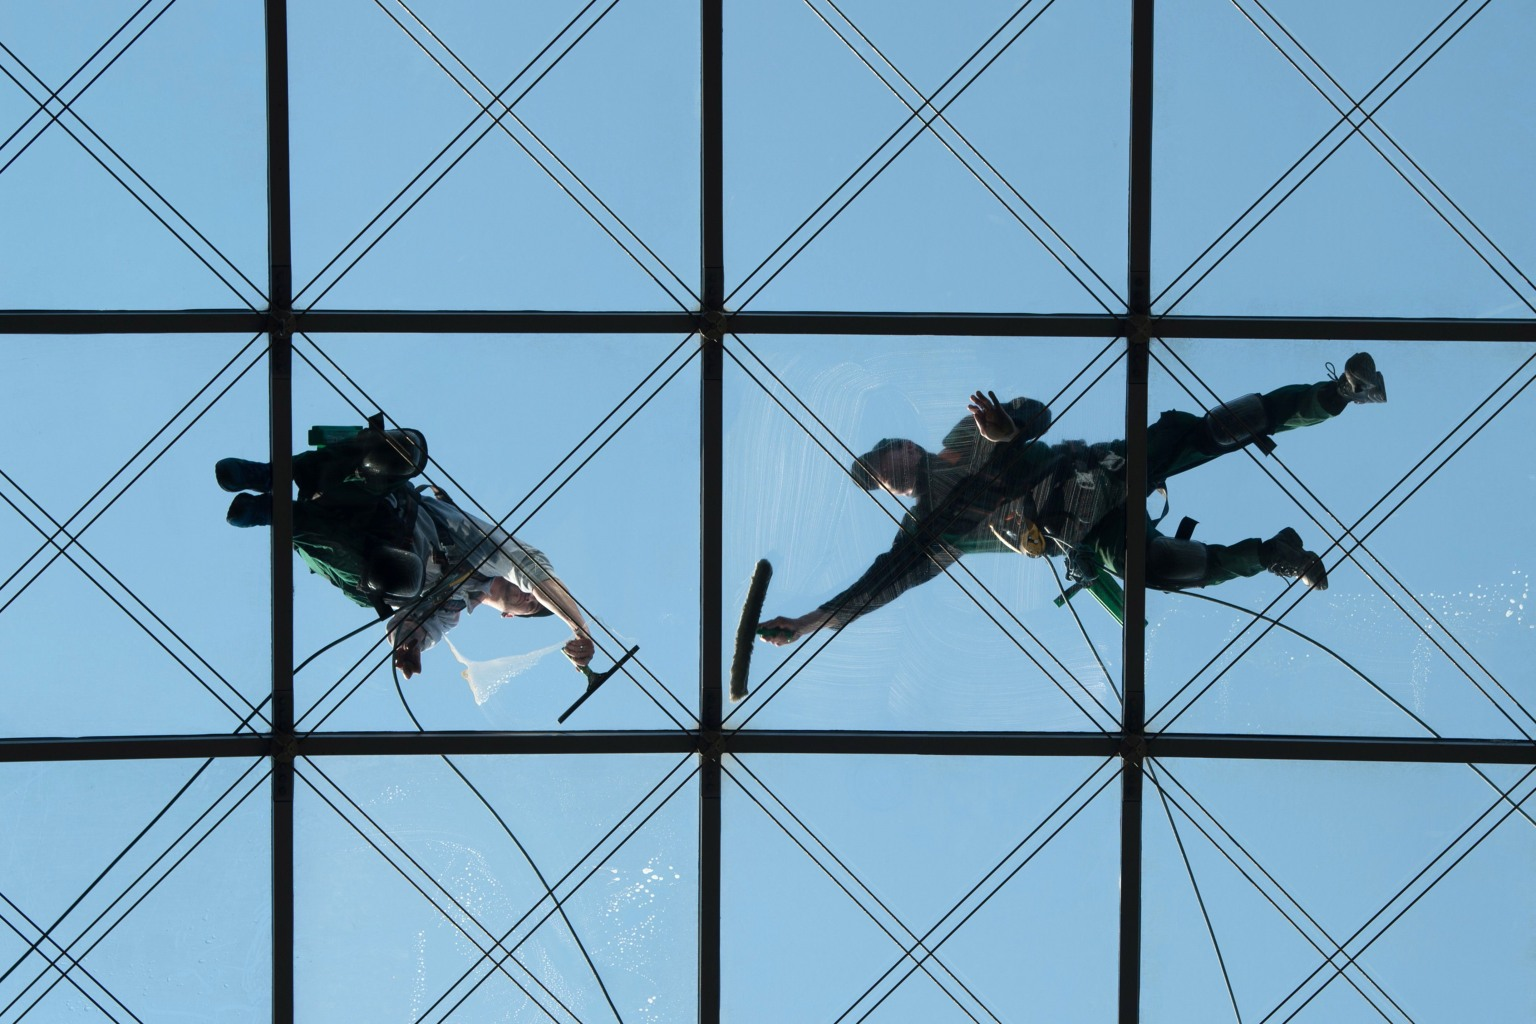 Workers clean the 88-foot-high glass roof of the World Trade Center in Dresden, Germany, on April 19. SEBASTIAN KAHNERT/AFP/Getty Images